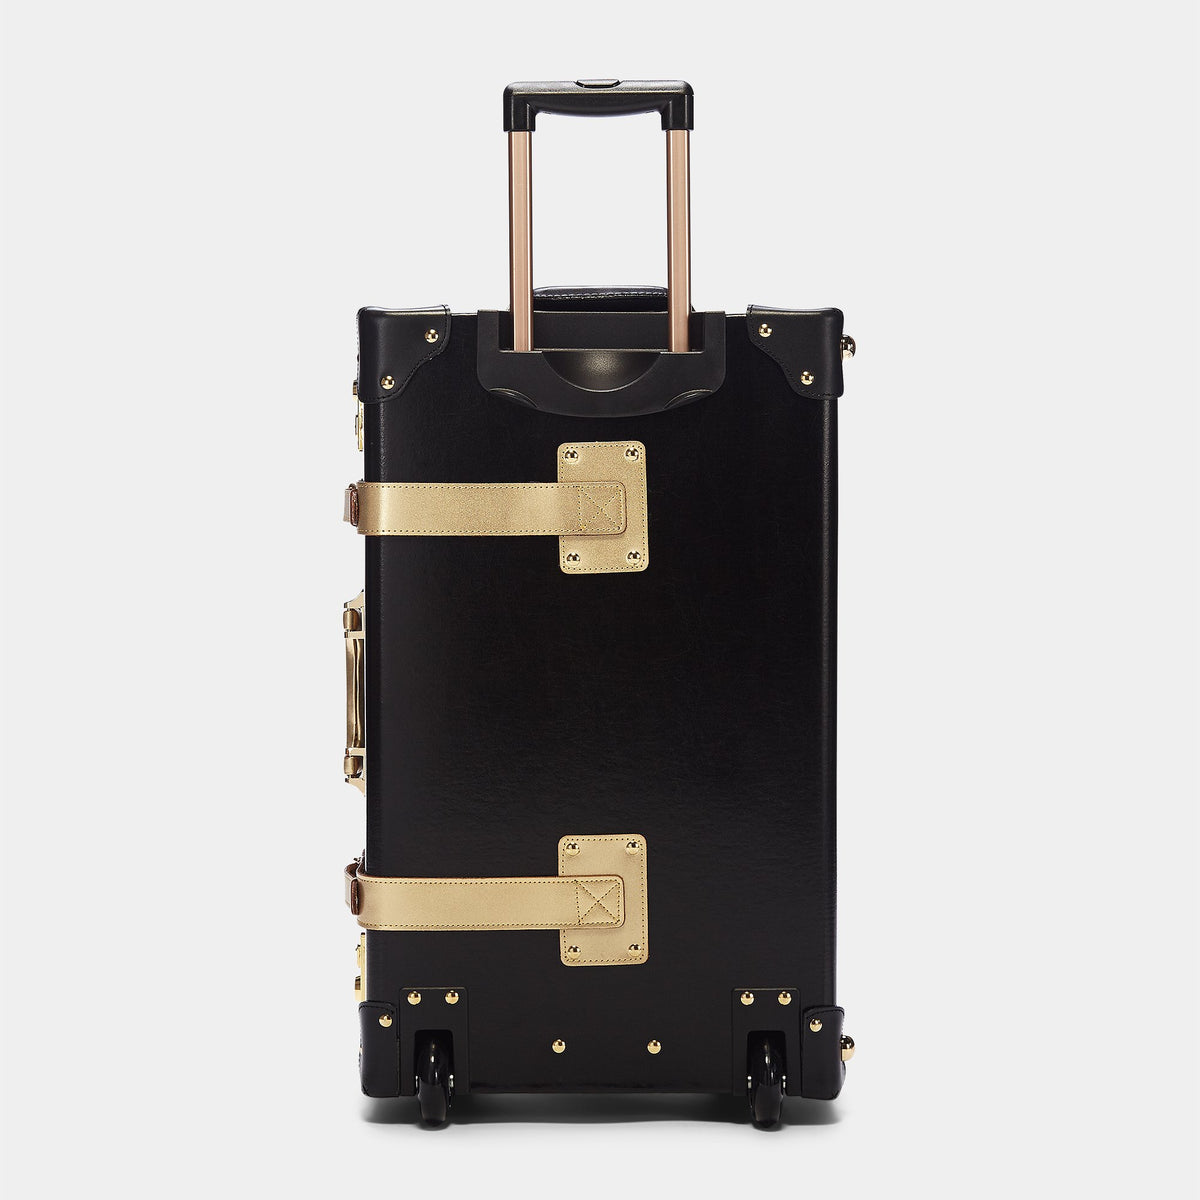 The Soprano Stowaway in Black - Vintage Style Leather Case - Exterior Back with Extendable Handles